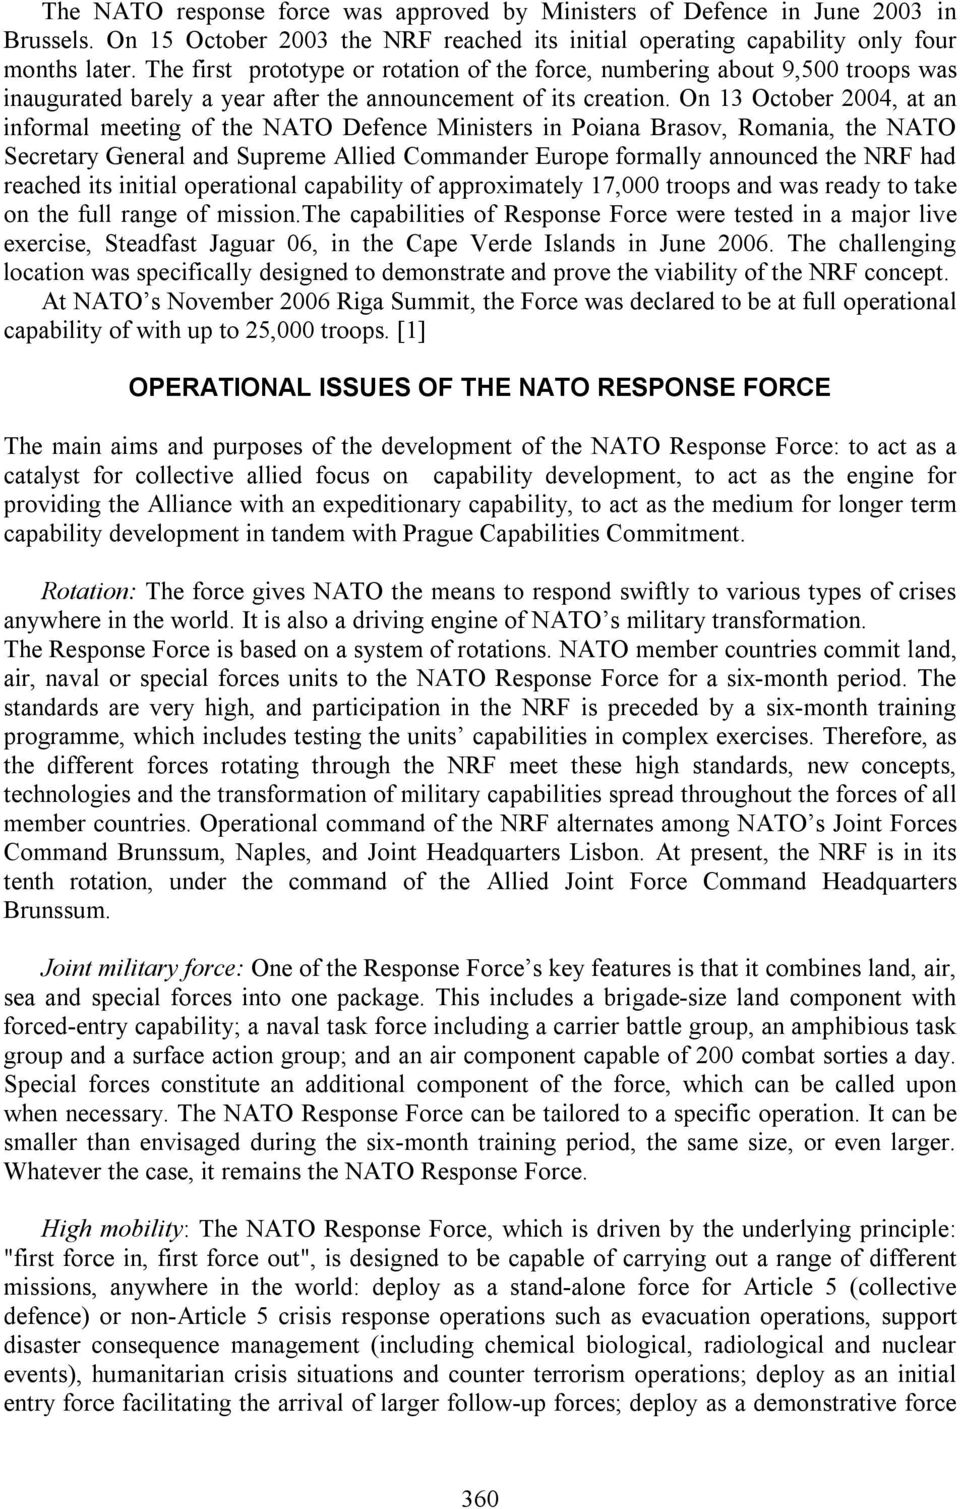 On 13 October 2004, at an informal meeting of the NATO Defence Ministers in Poiana Brasov, Romania, the NATO Secretary General and Supreme Allied Commander Europe formally announced the NRF had